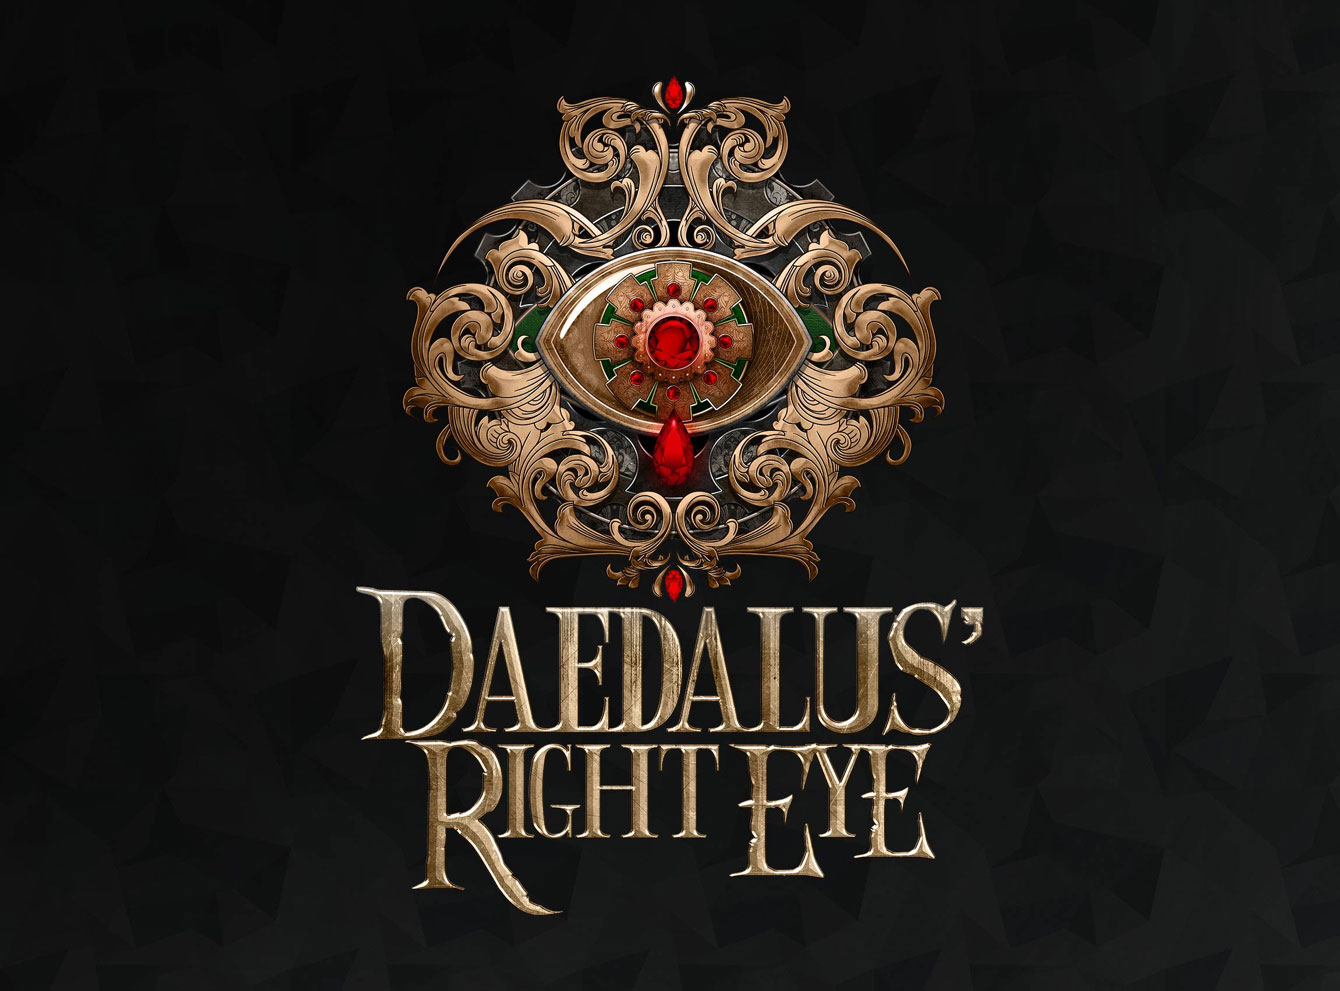 Daedalus' Right Eye Logo